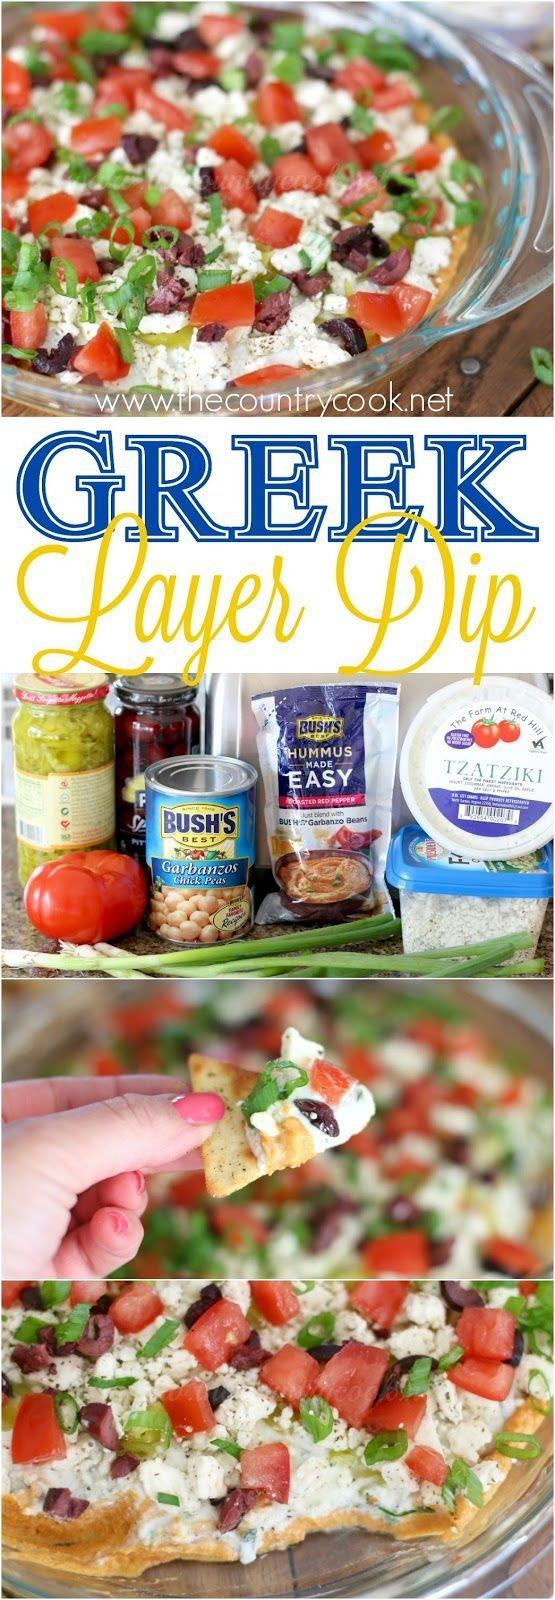 Greek Layer Dip recipe. Easy, tzatziki, Feta cheese and Kalamata olives from The Country Cook. Ridiculously good! Like a seven layer dip but with Greek inspiration!